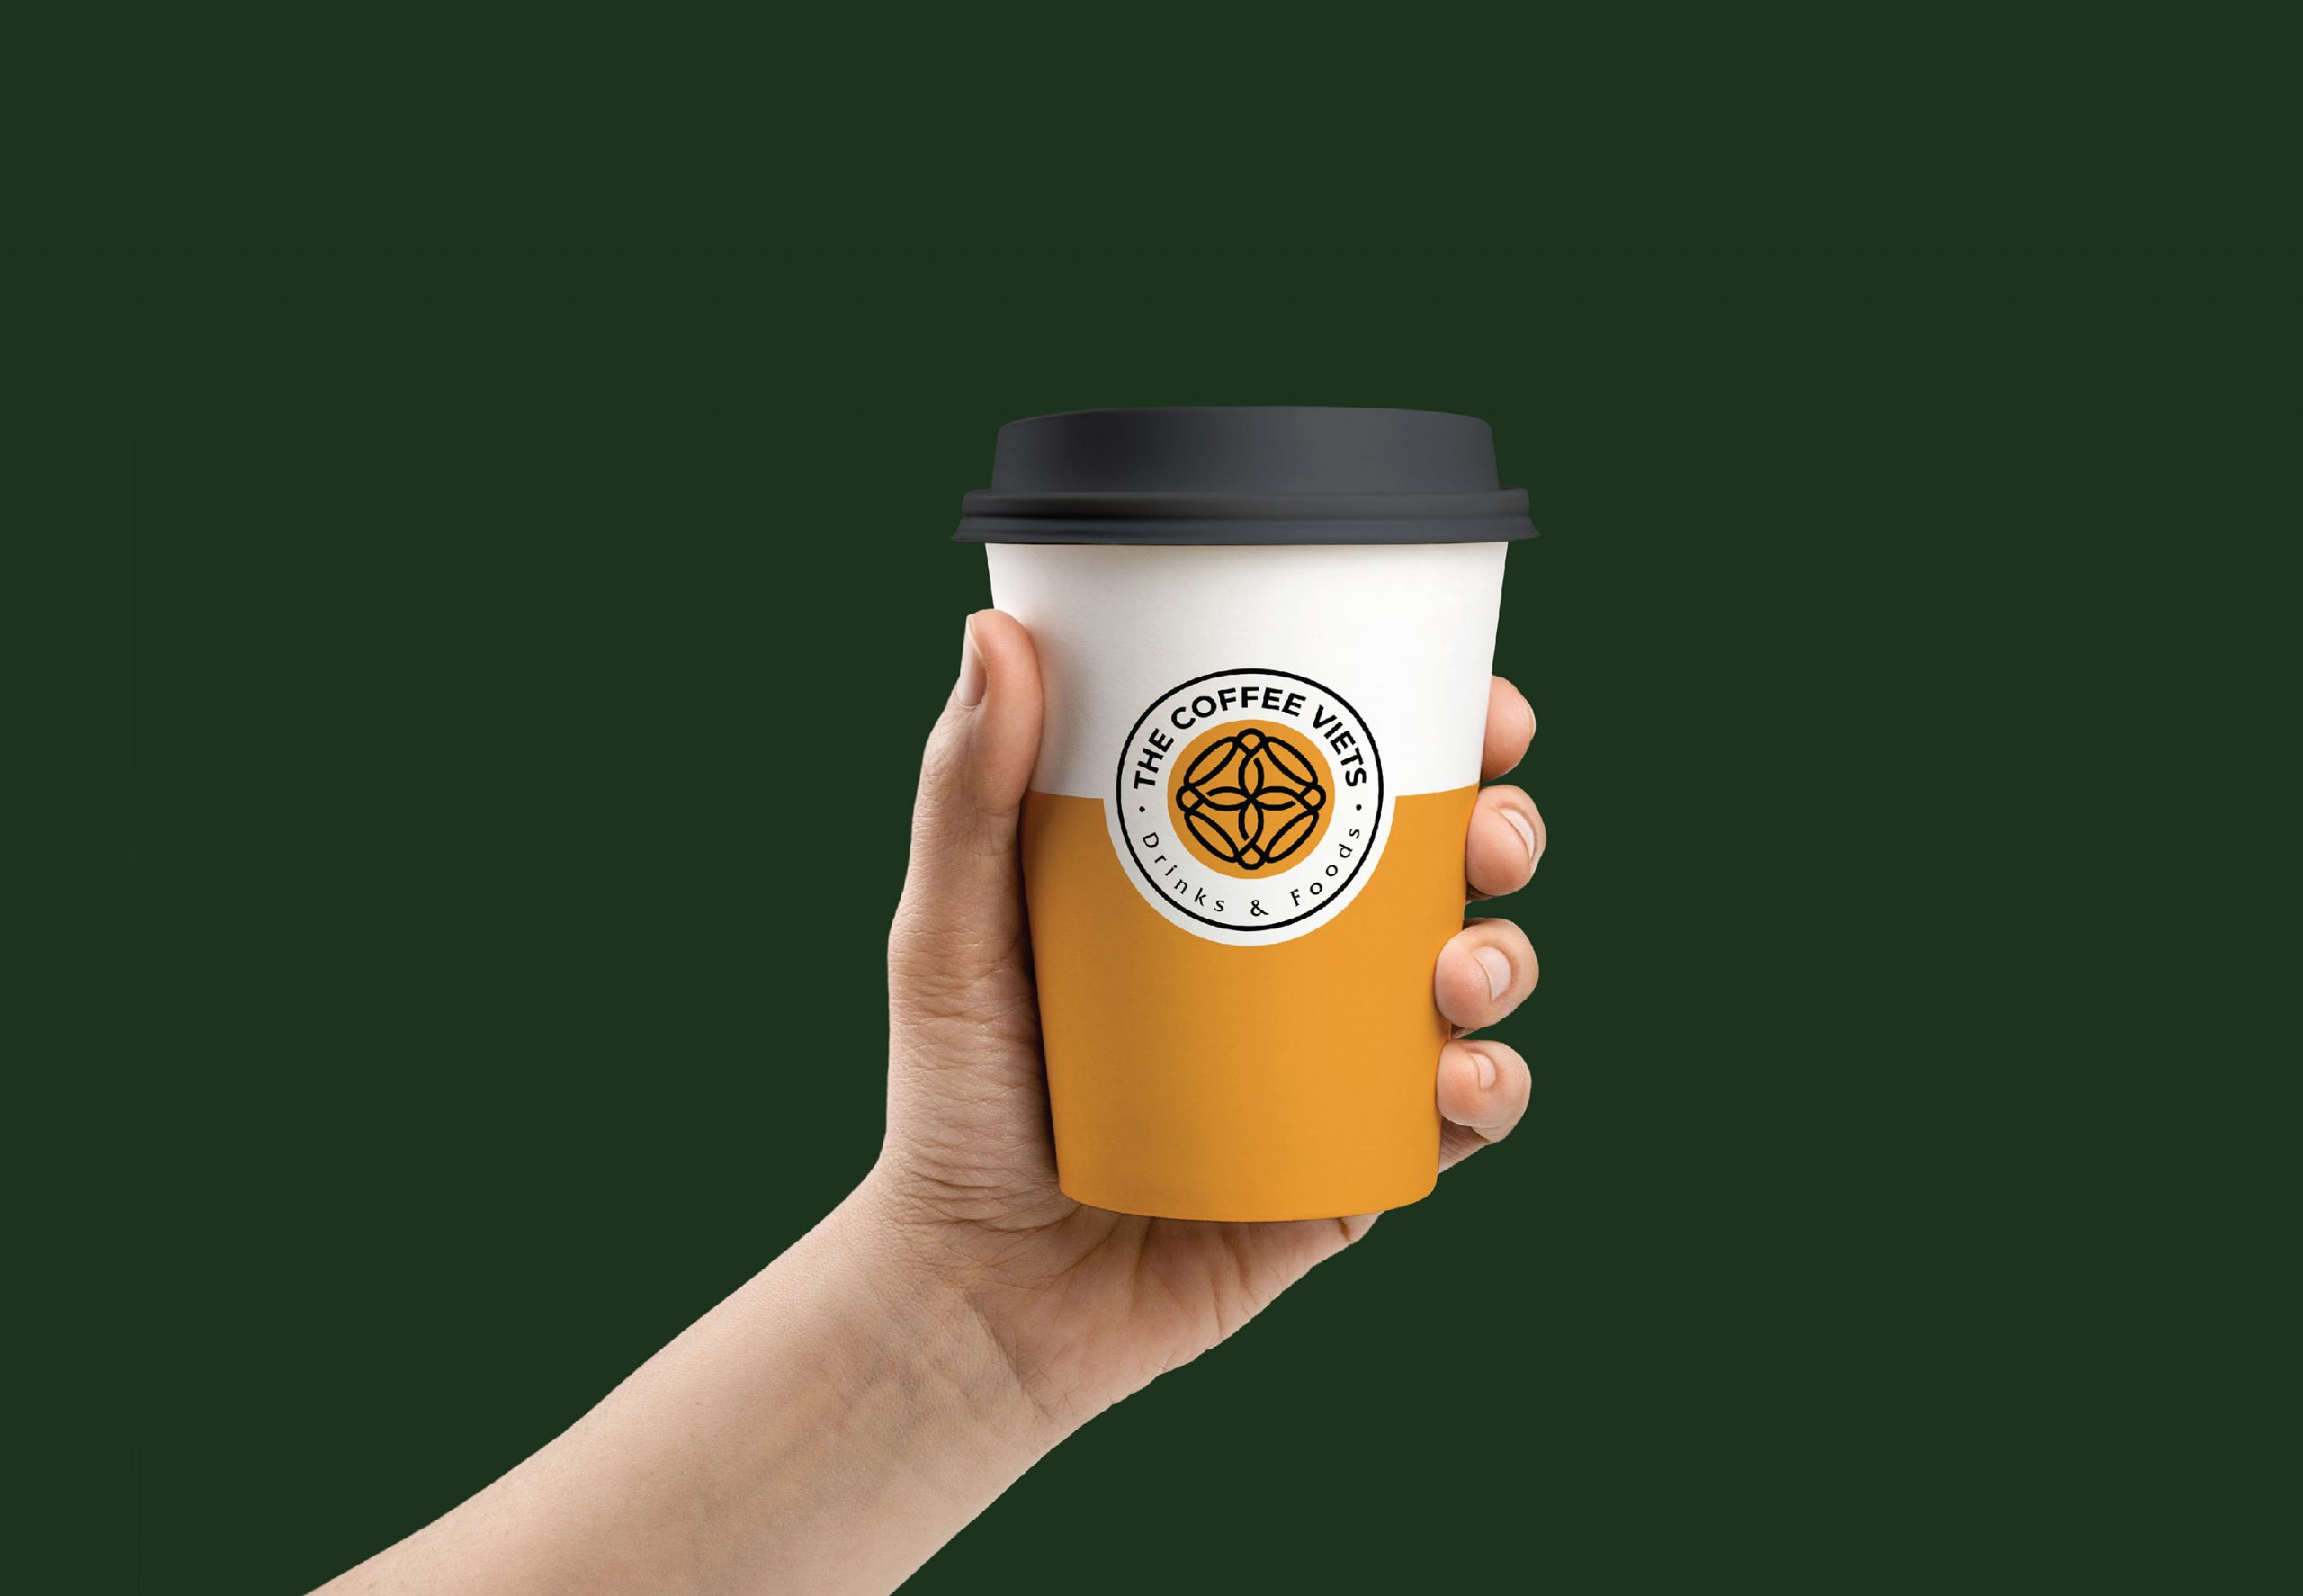 The Coffee Viet cup design